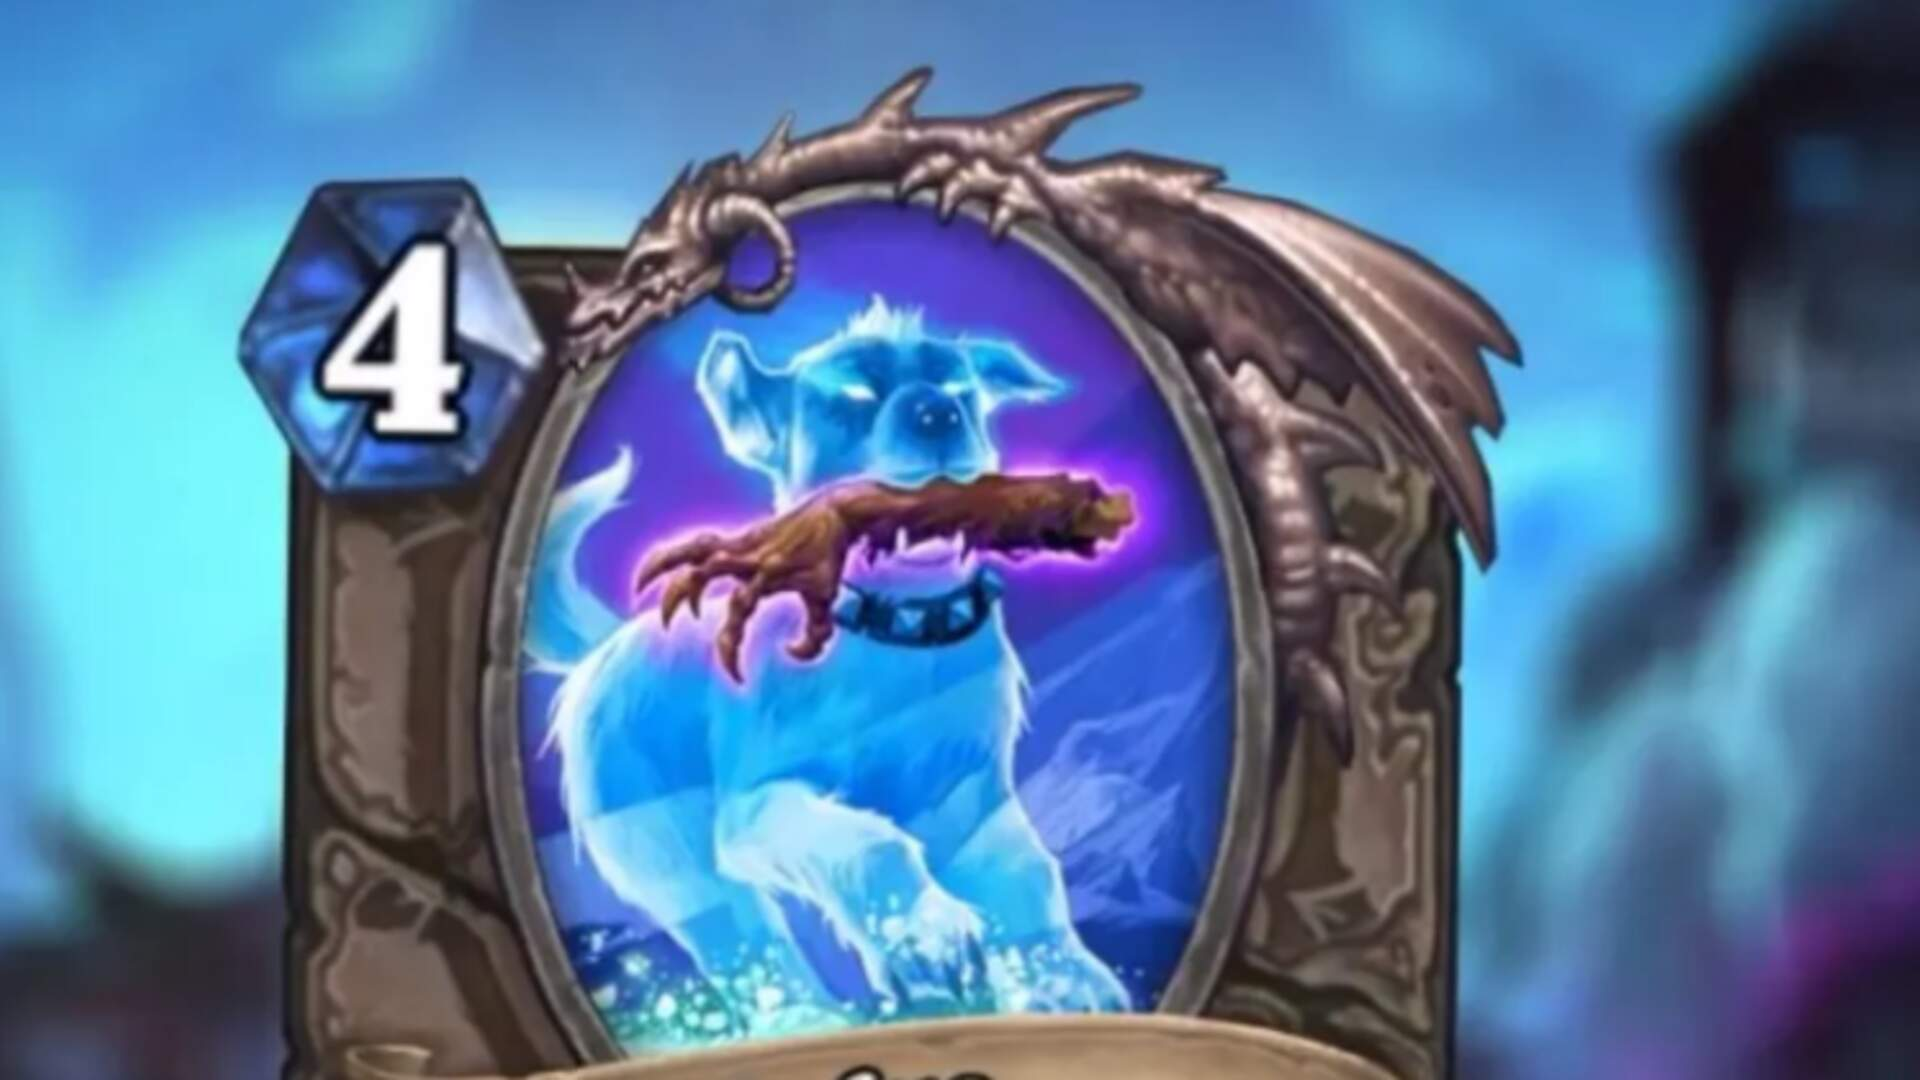 Hearthstone Knights of the Frozen Throne's Good Boy Dog Card is Winning Over Fans and Players